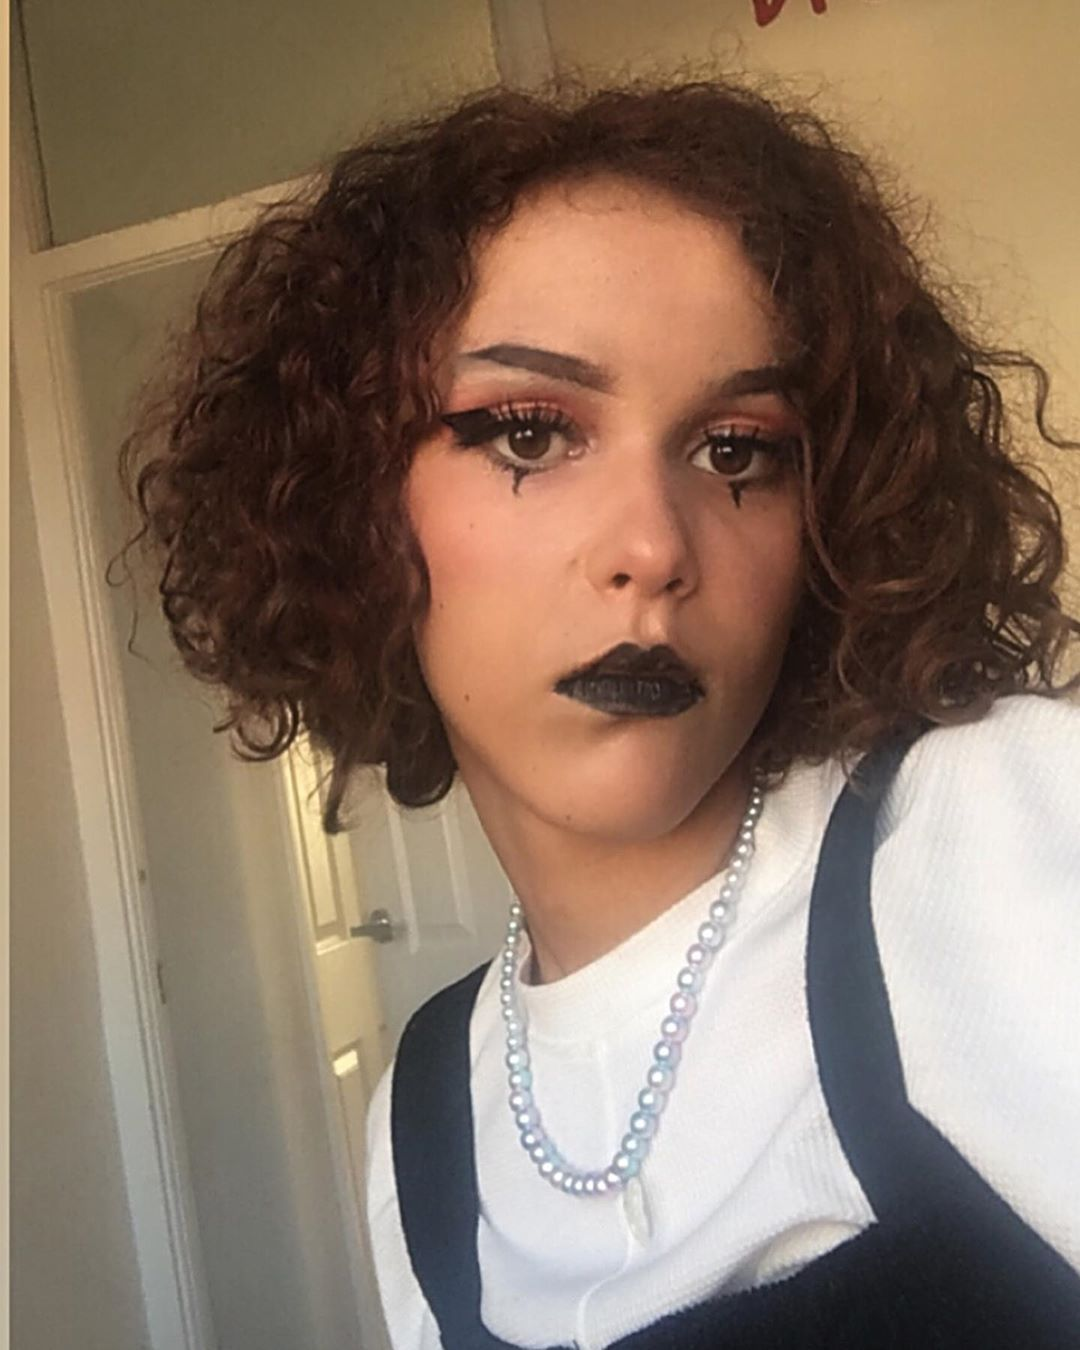 Cute Edgy Alternative E Girl Short Curly Hair Goth In 2020 Short Curly Hair Curly Hair Styles Short Curly